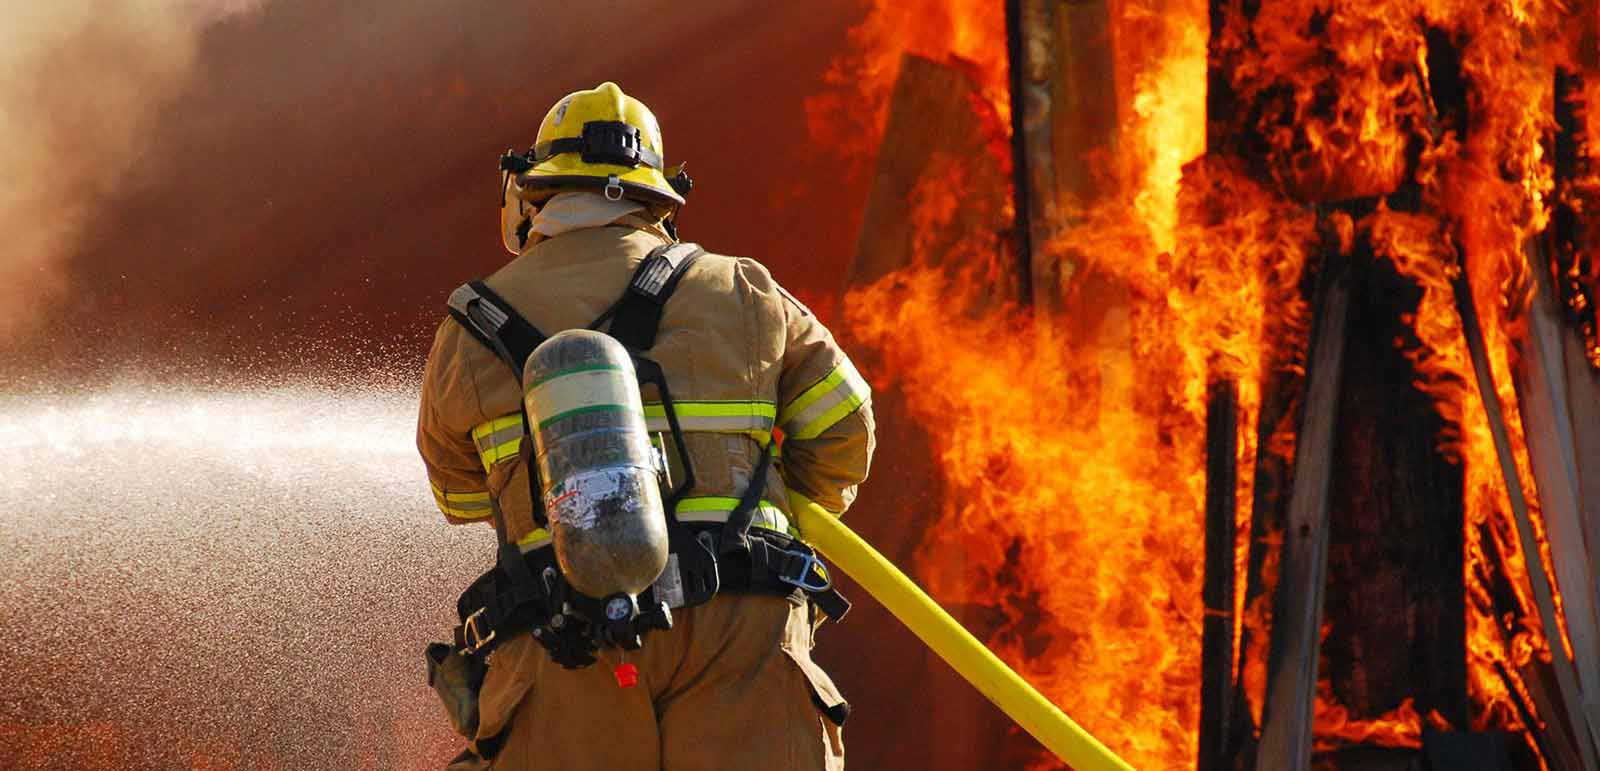 Fire marshal training course online, RoSPA approved and CPD certified video based learning system